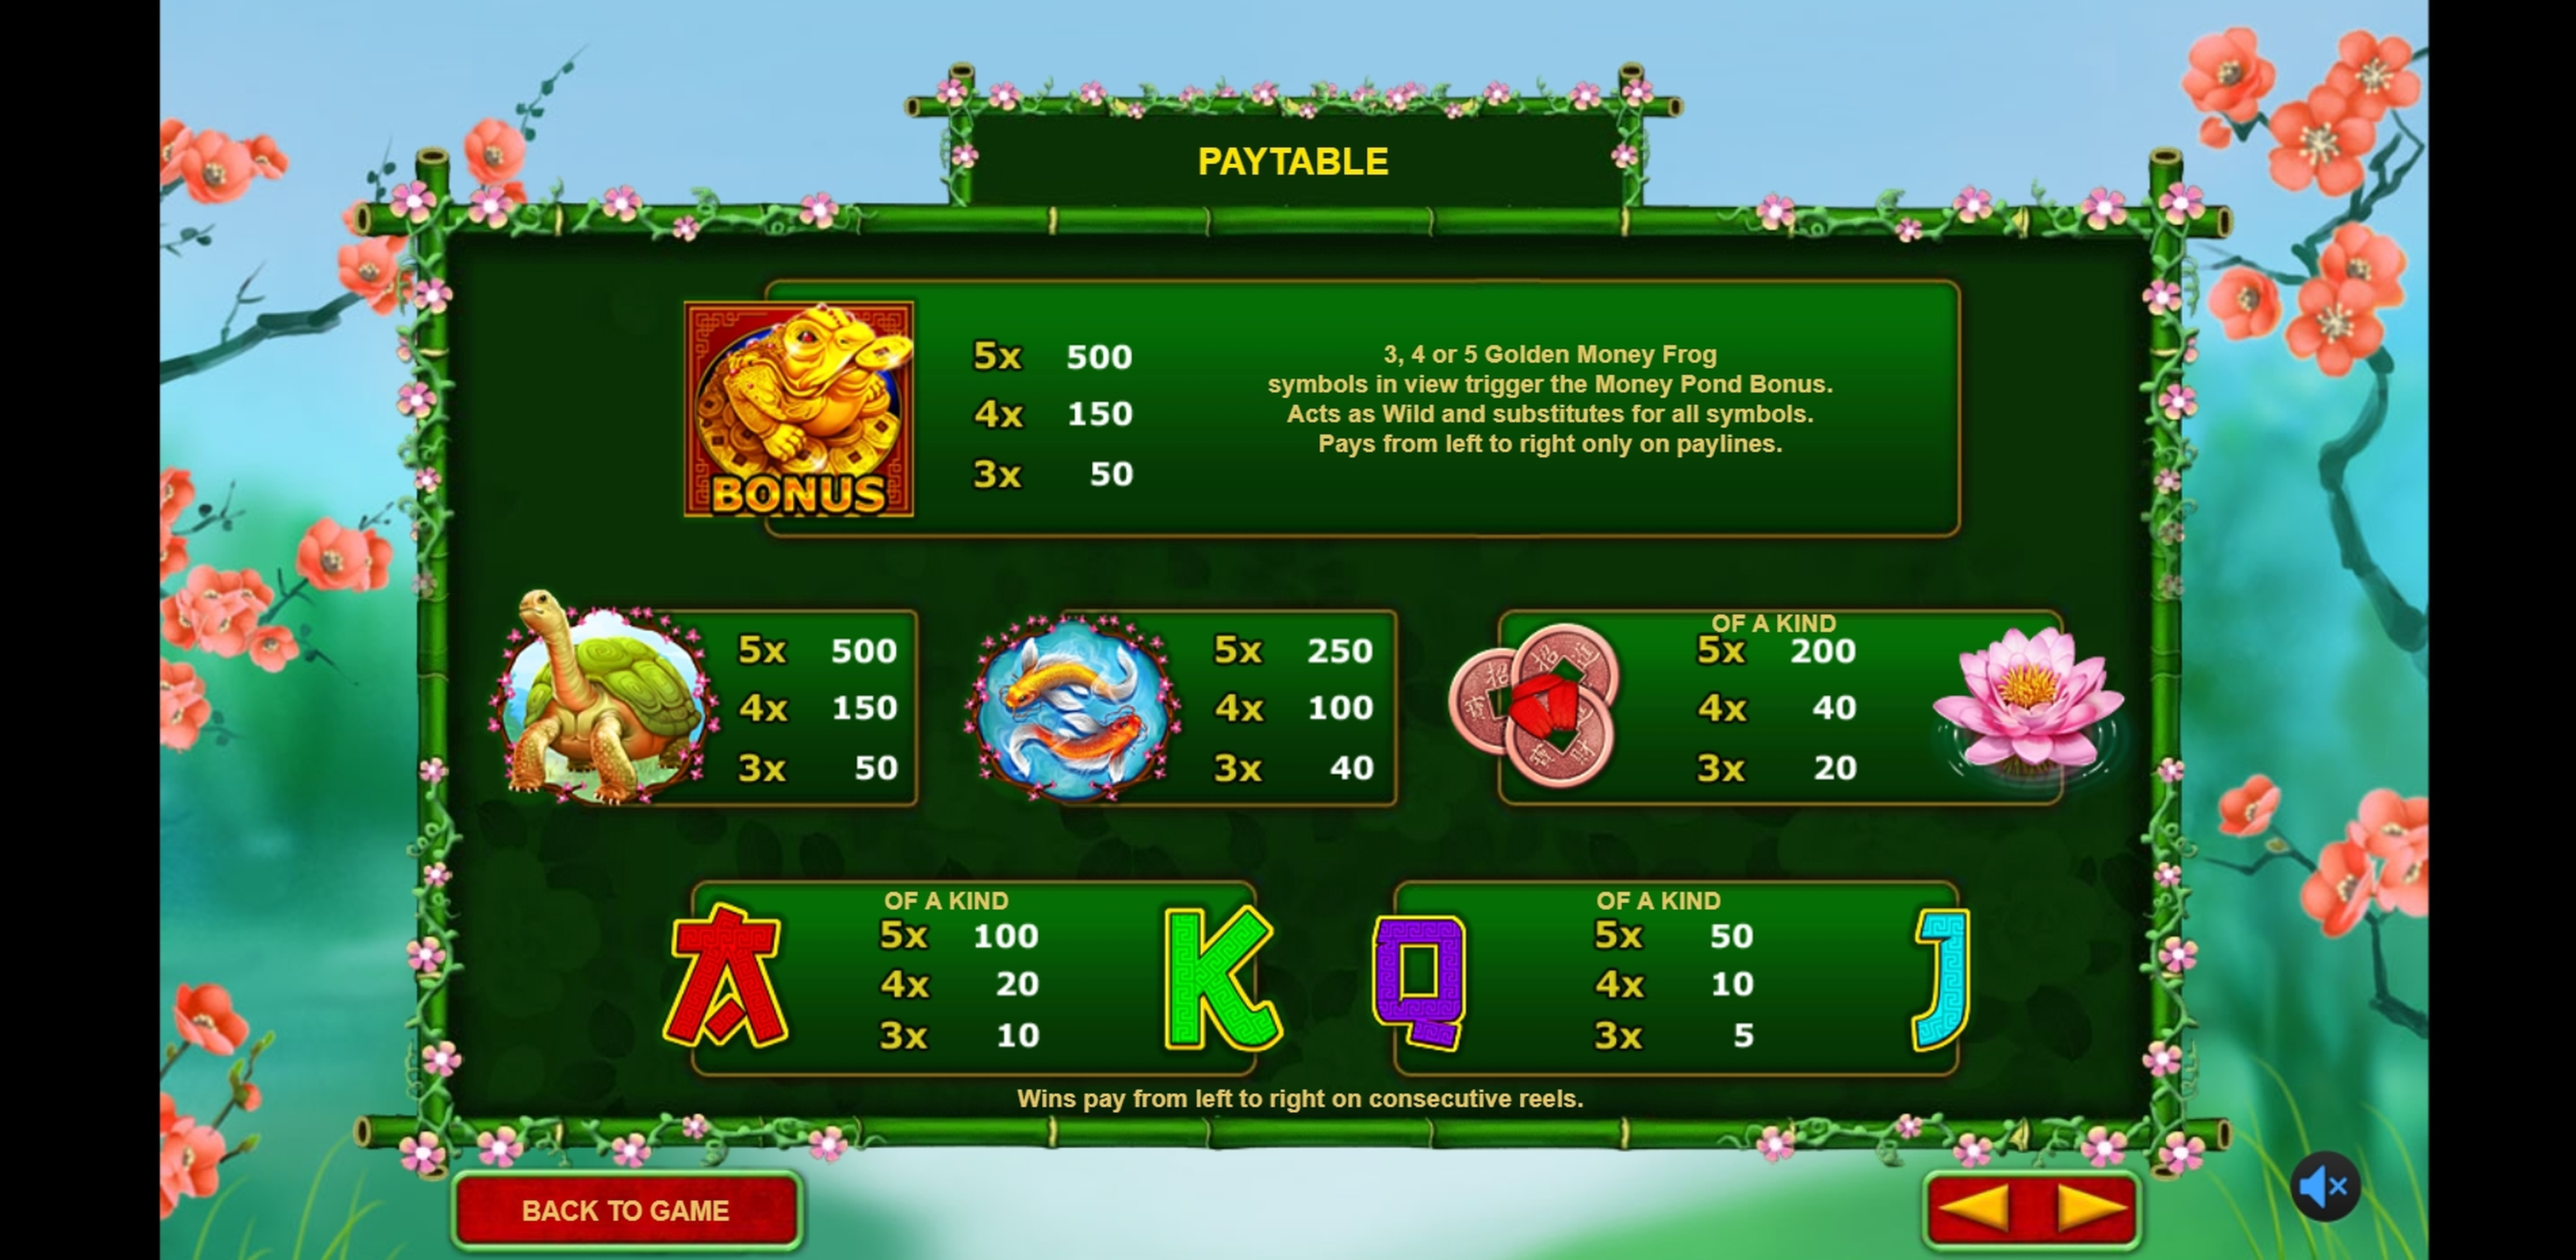 Info of Golden Money Frog Slot Game by Sigma Gaming